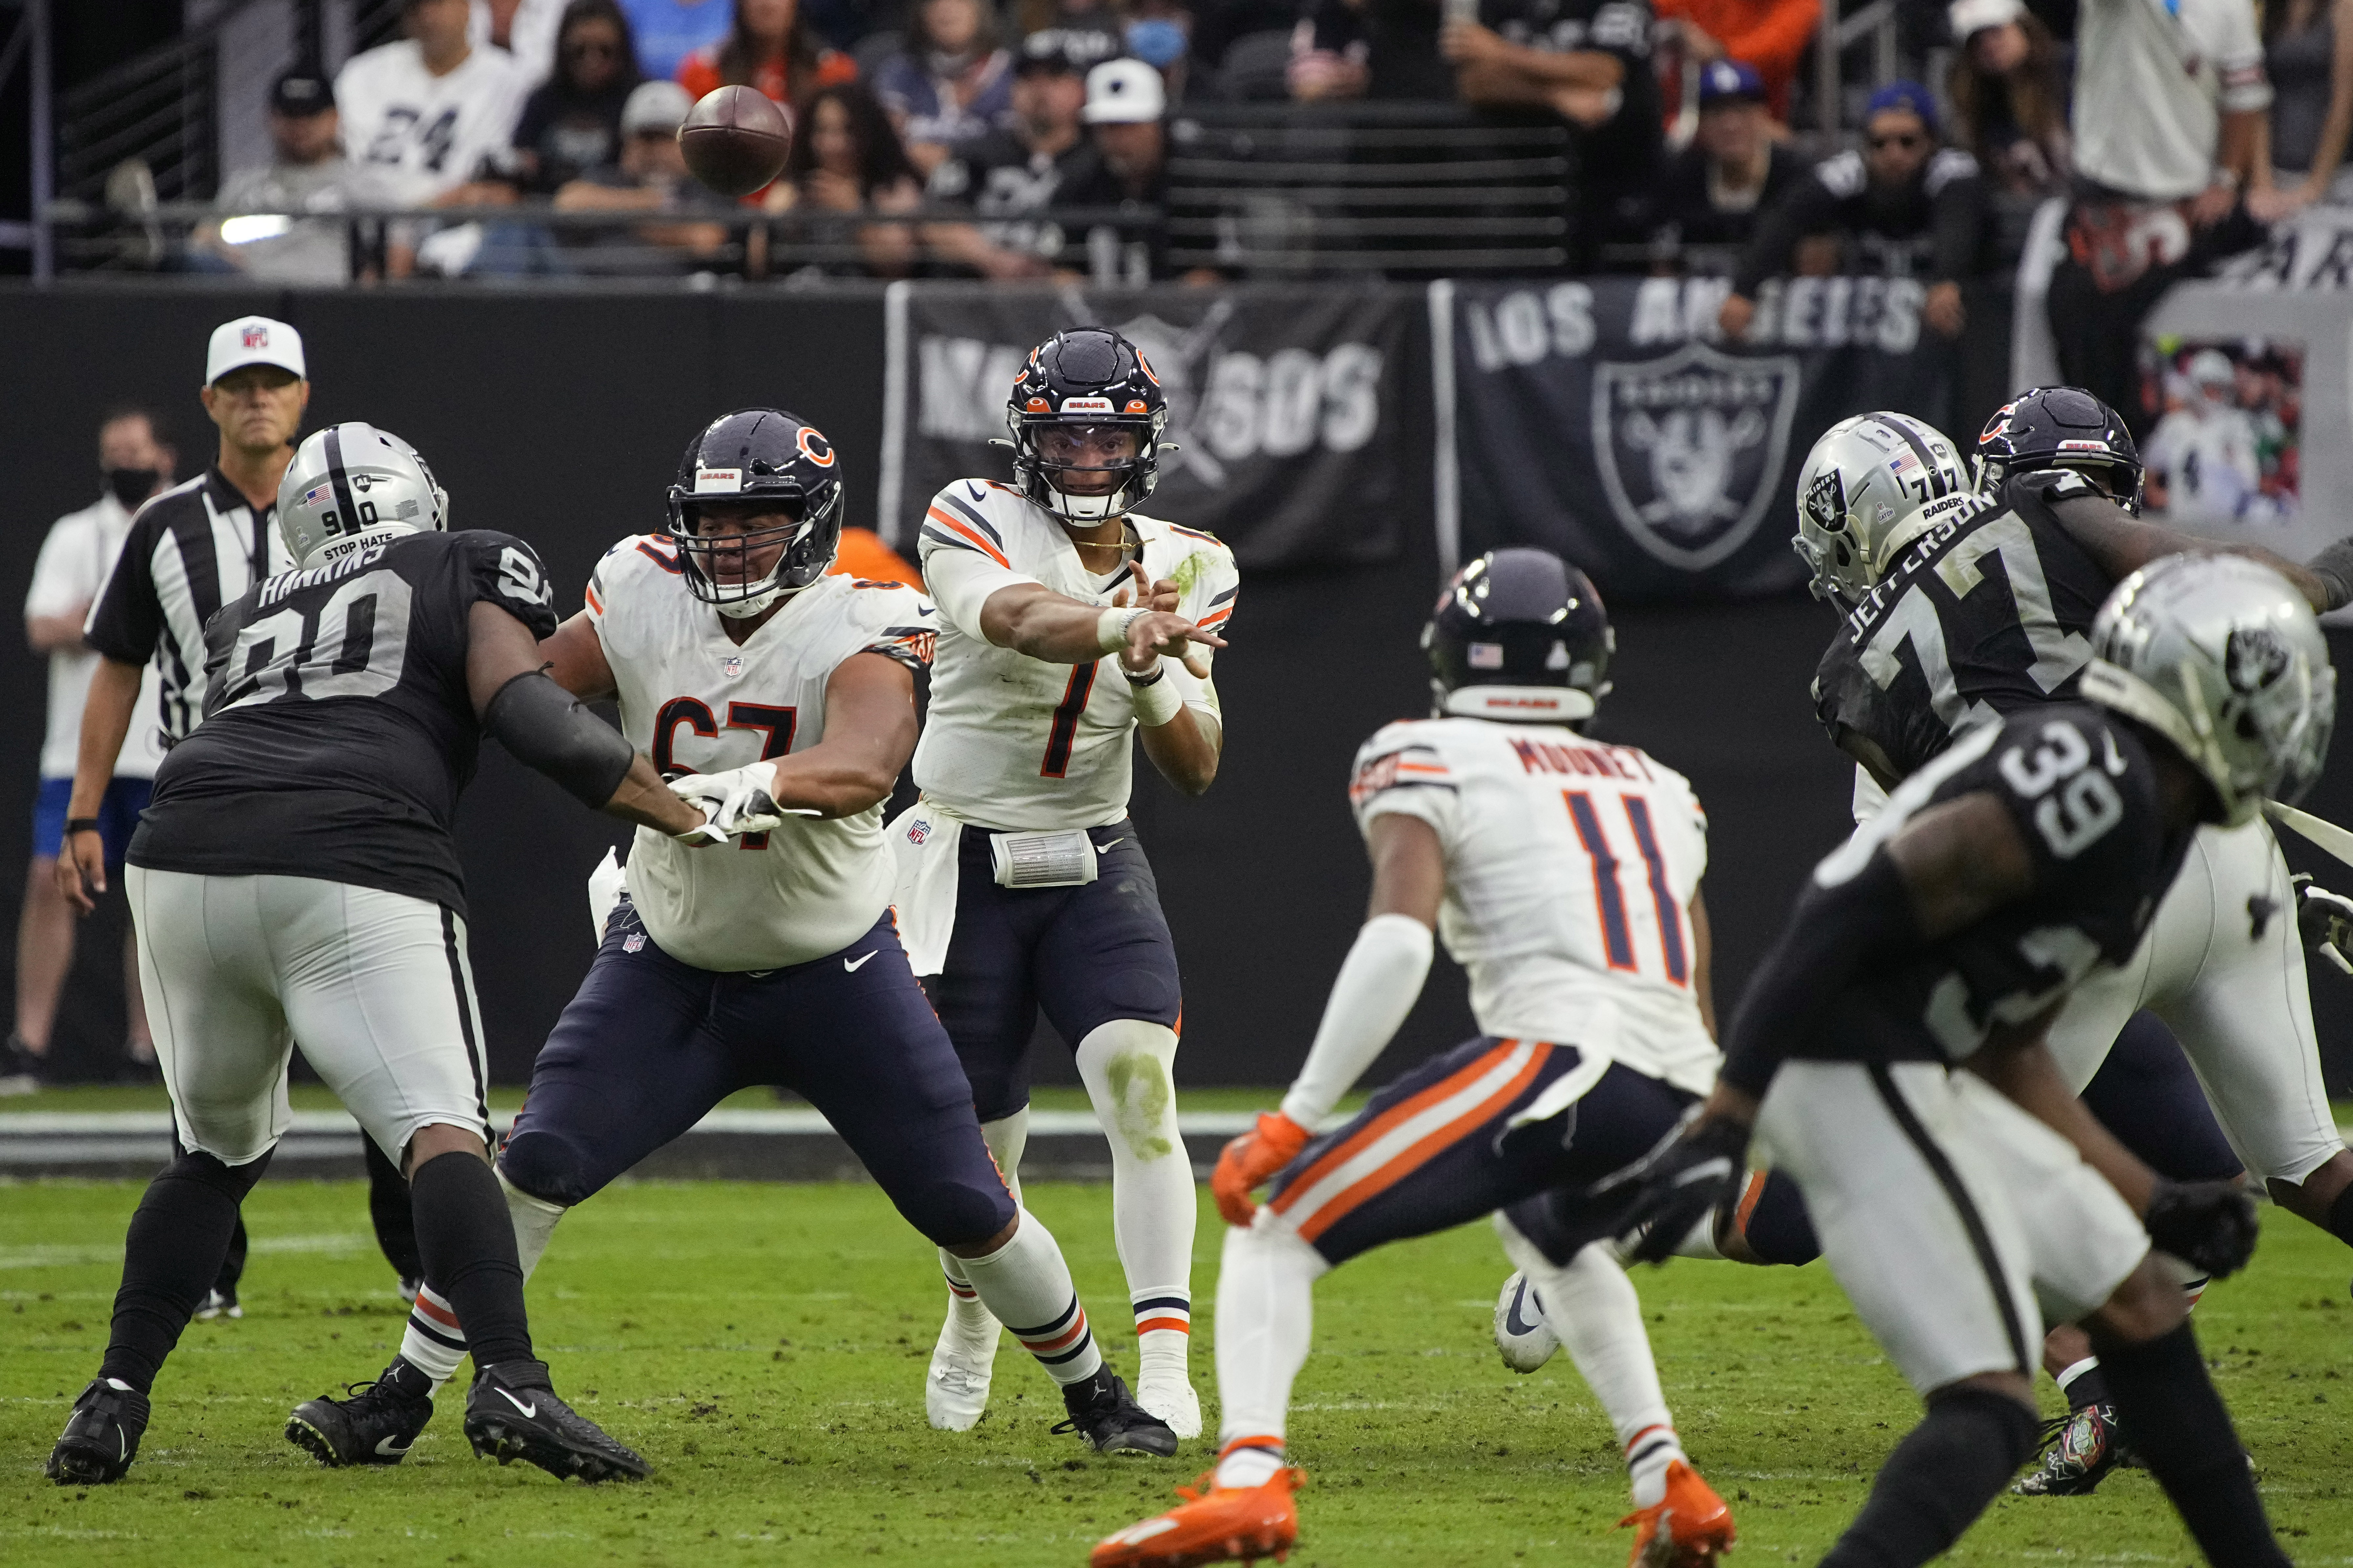 Bears quarterback Justin Fields (1, throwing a completion to Darnell Mooney) threw for 111 yards against the Raiders last week.